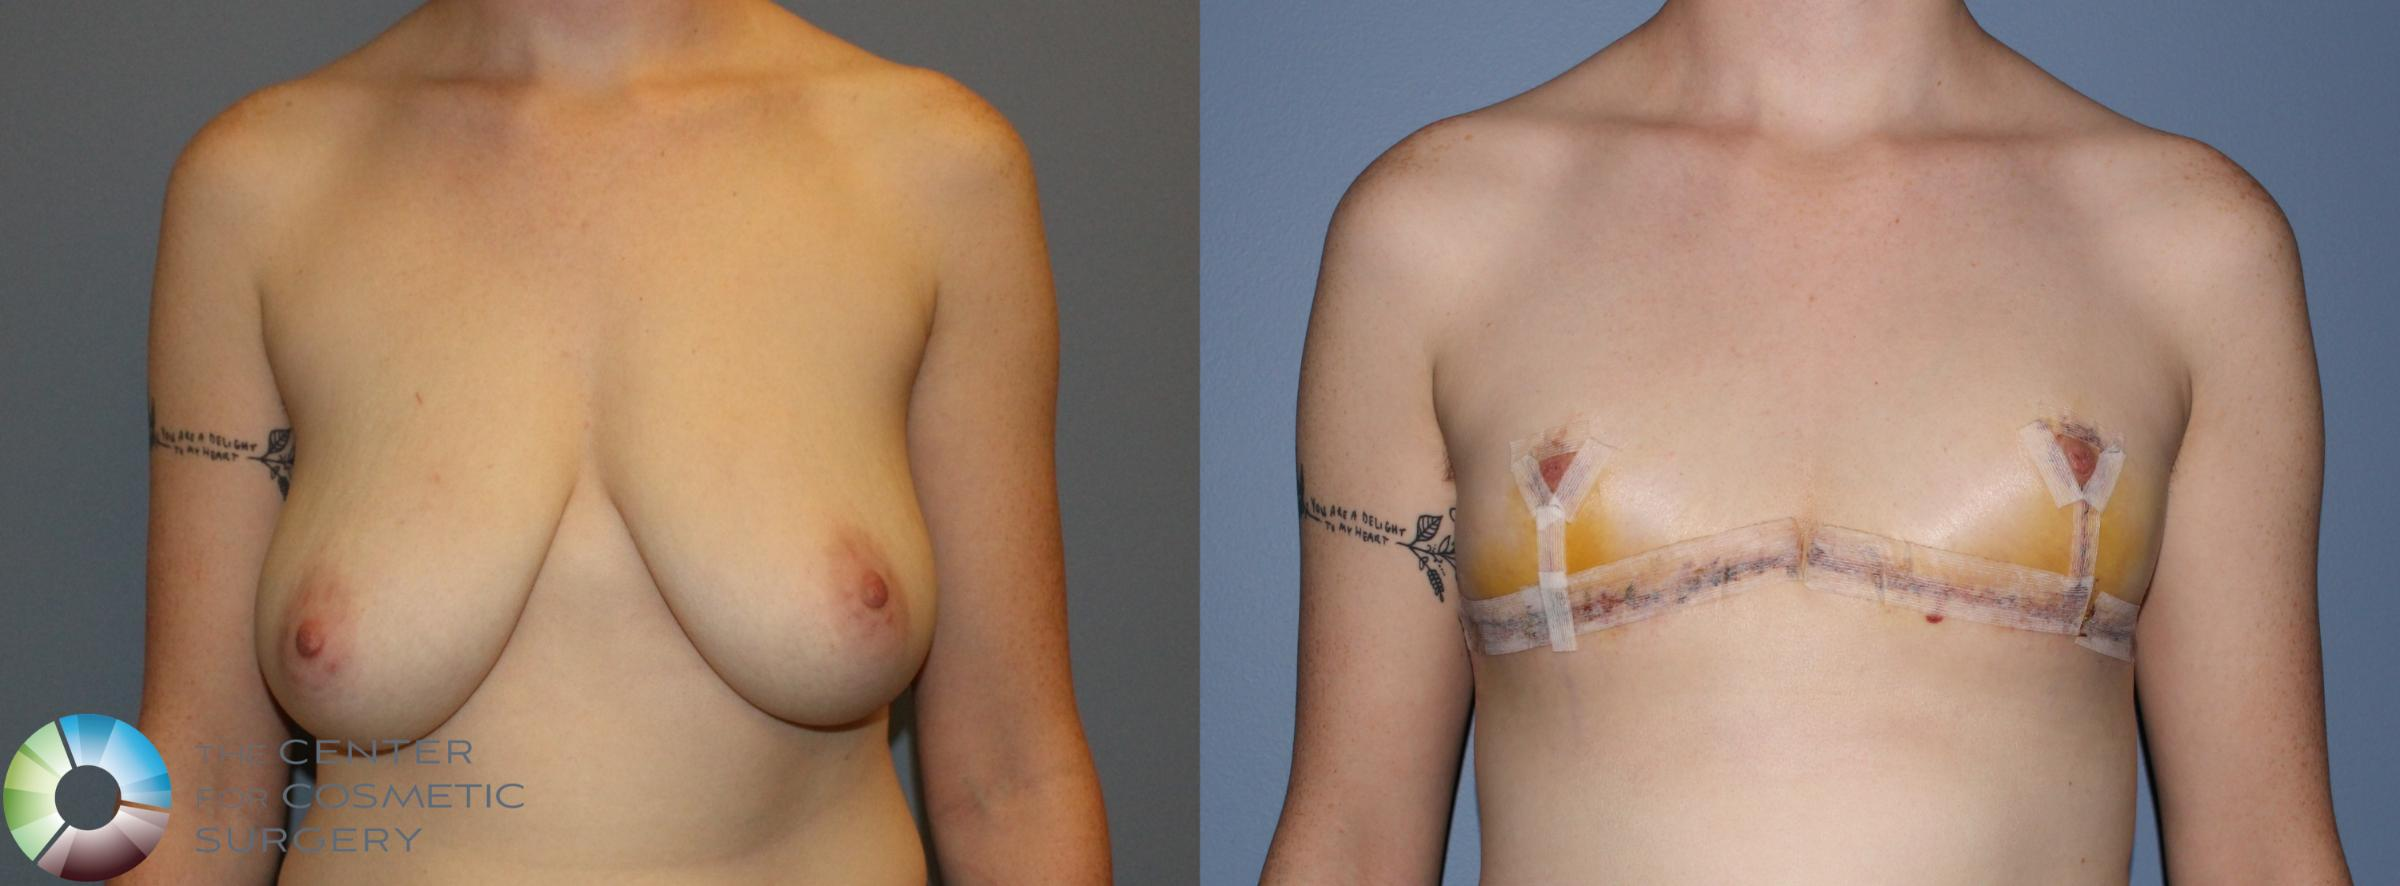 FTM Top Surgery/Chest Masculinization Case 11212 Before & After Front | Golden, CO | The Center for Cosmetic Surgery